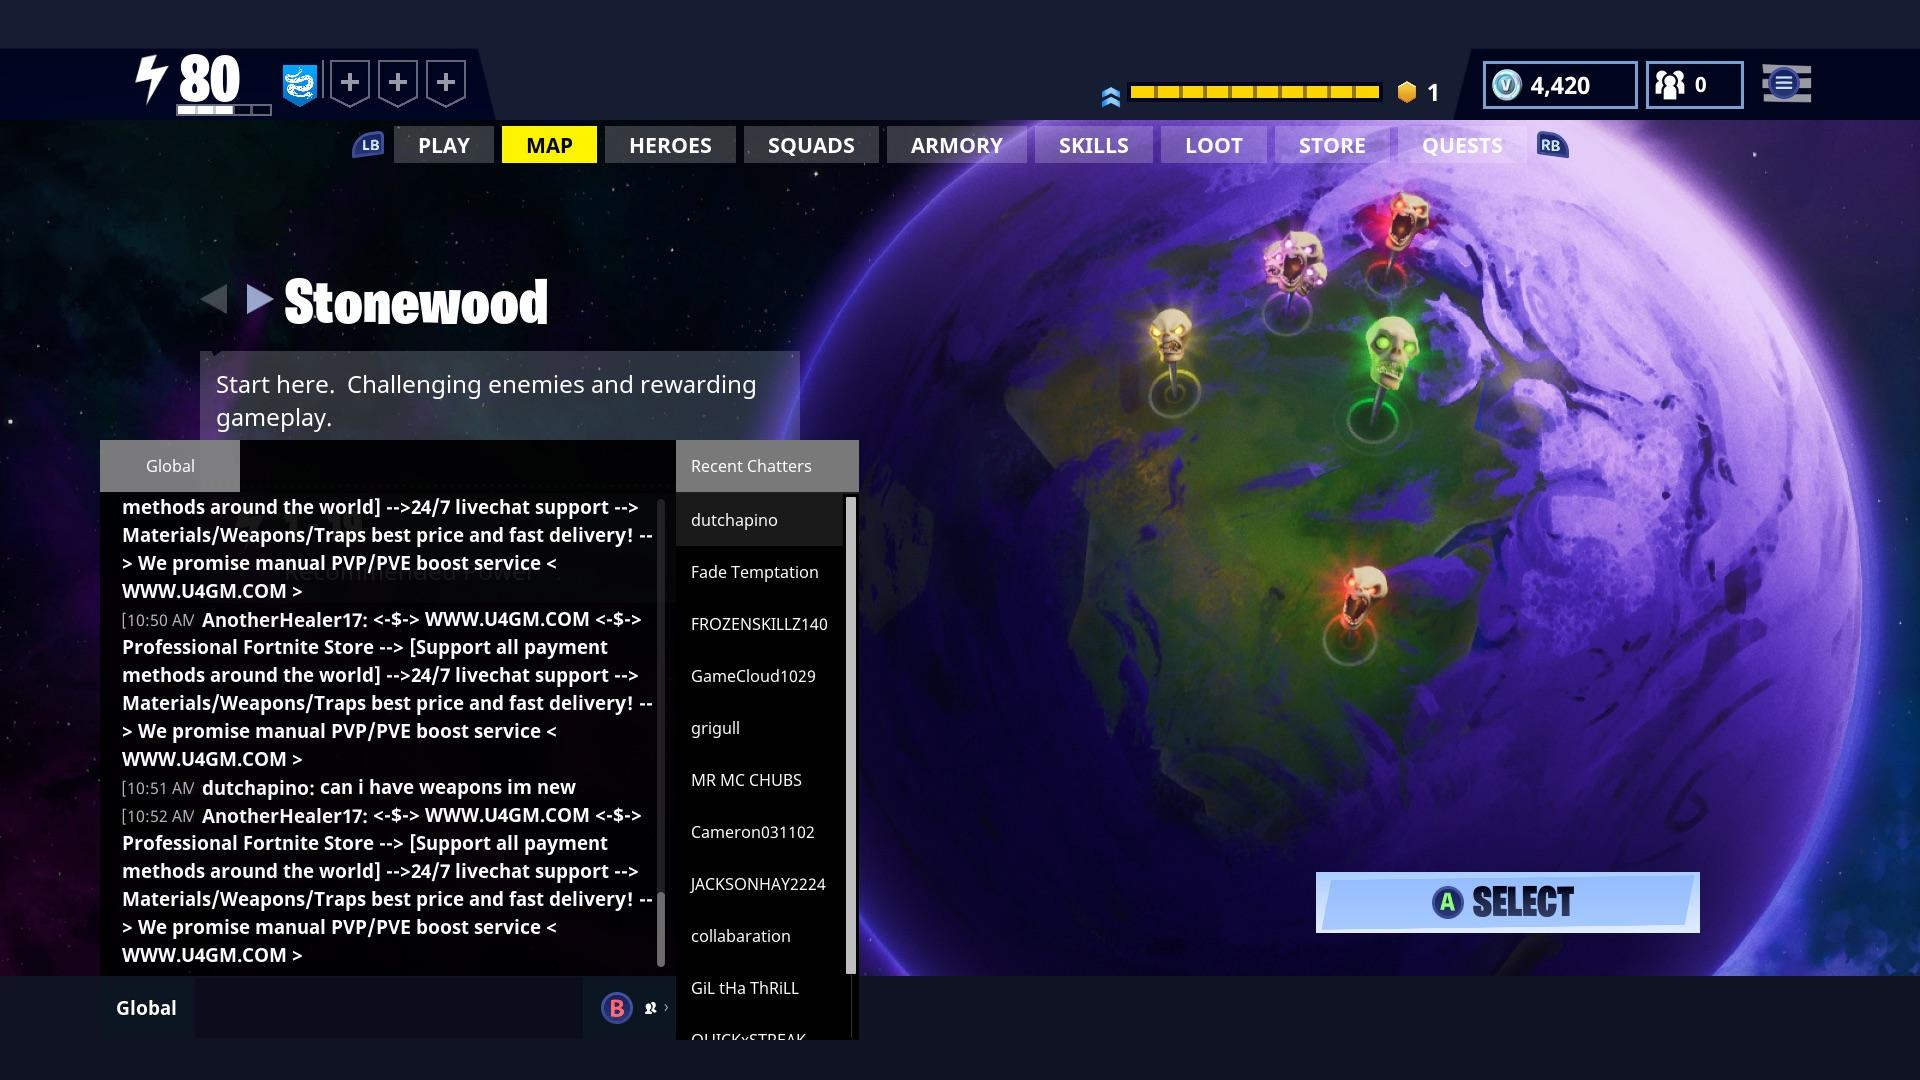 Epic Shut Down Fortnite Global Chat And Founder's Chat ...